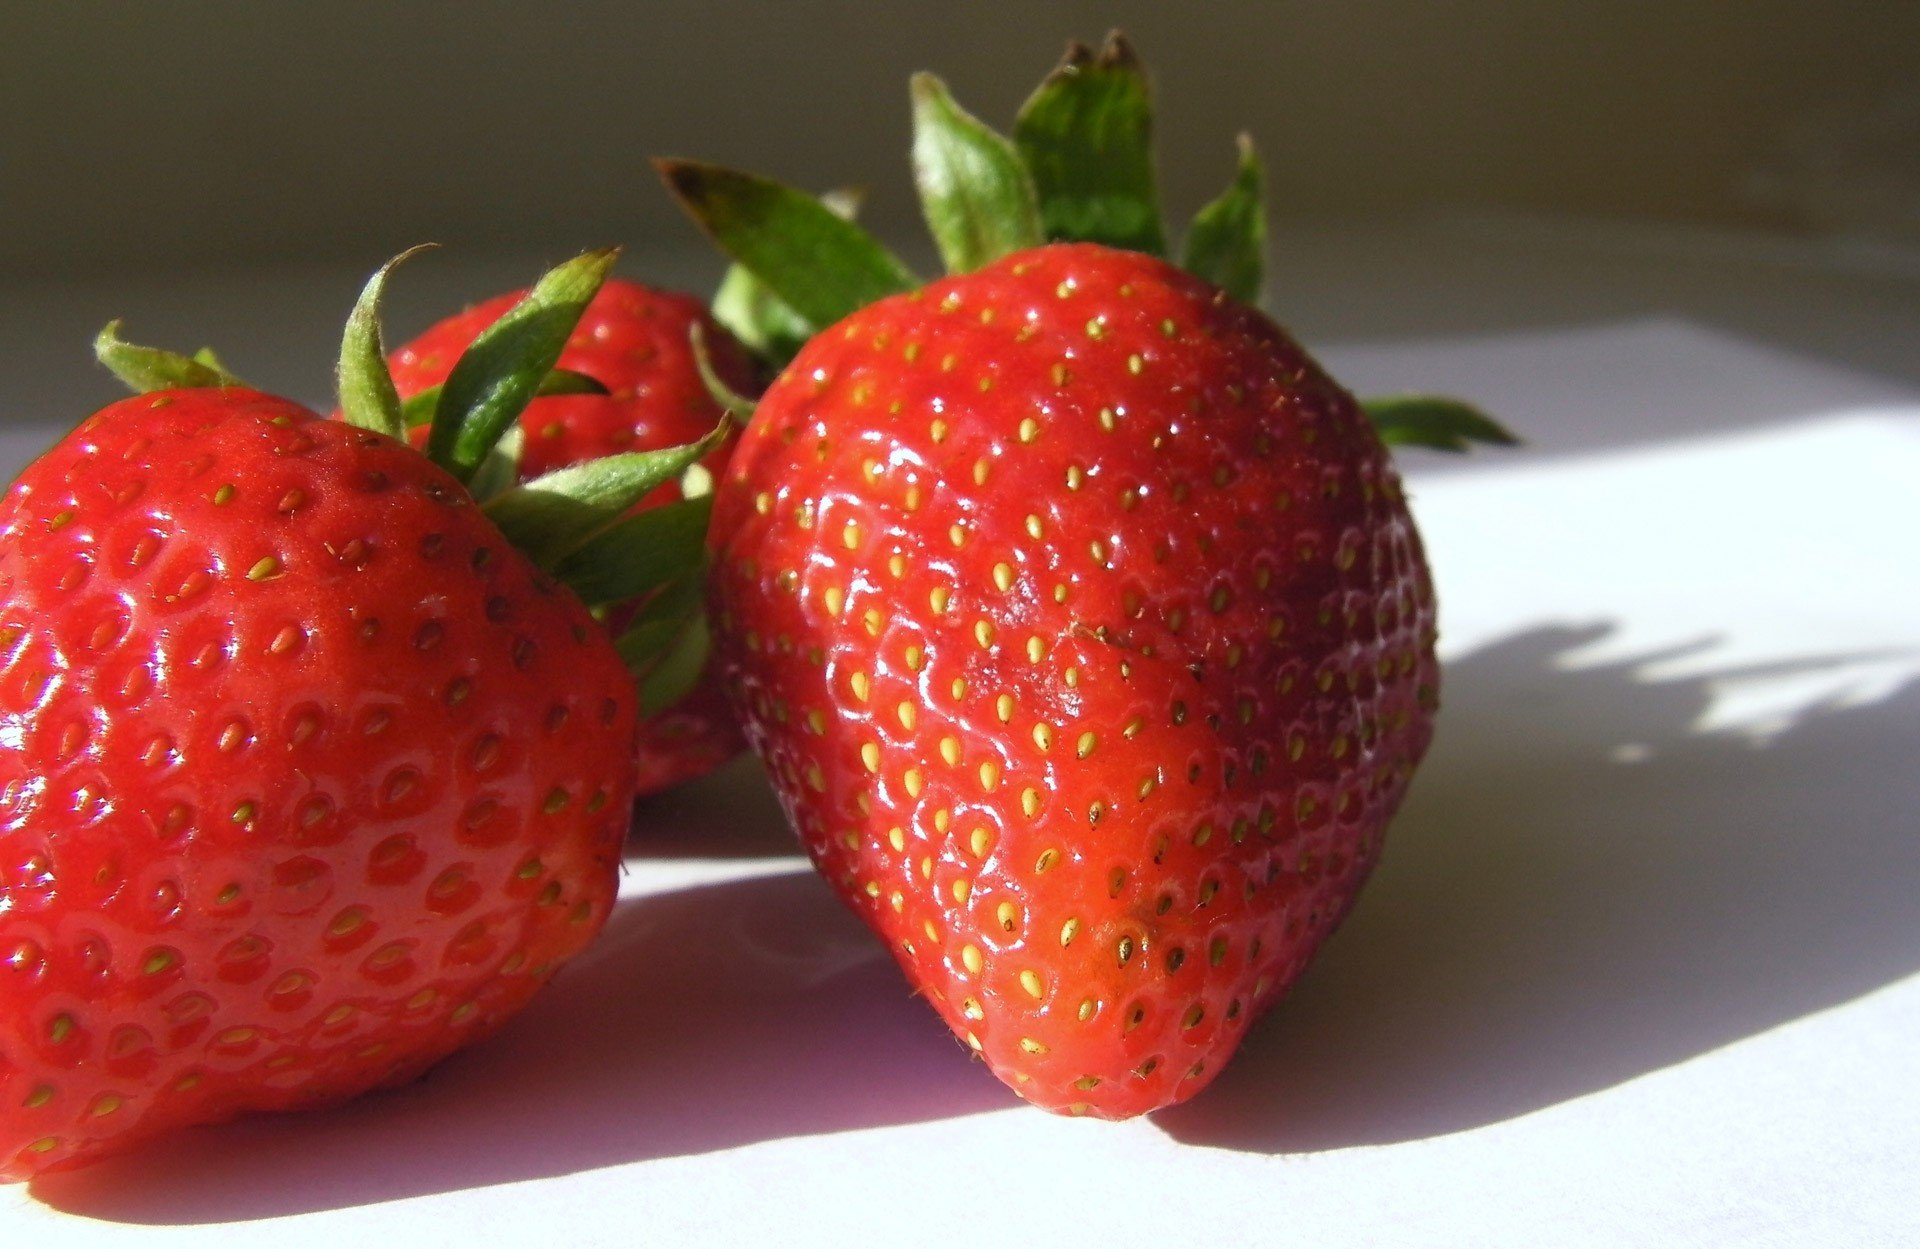 Strawberry Wallpapers for Laptop